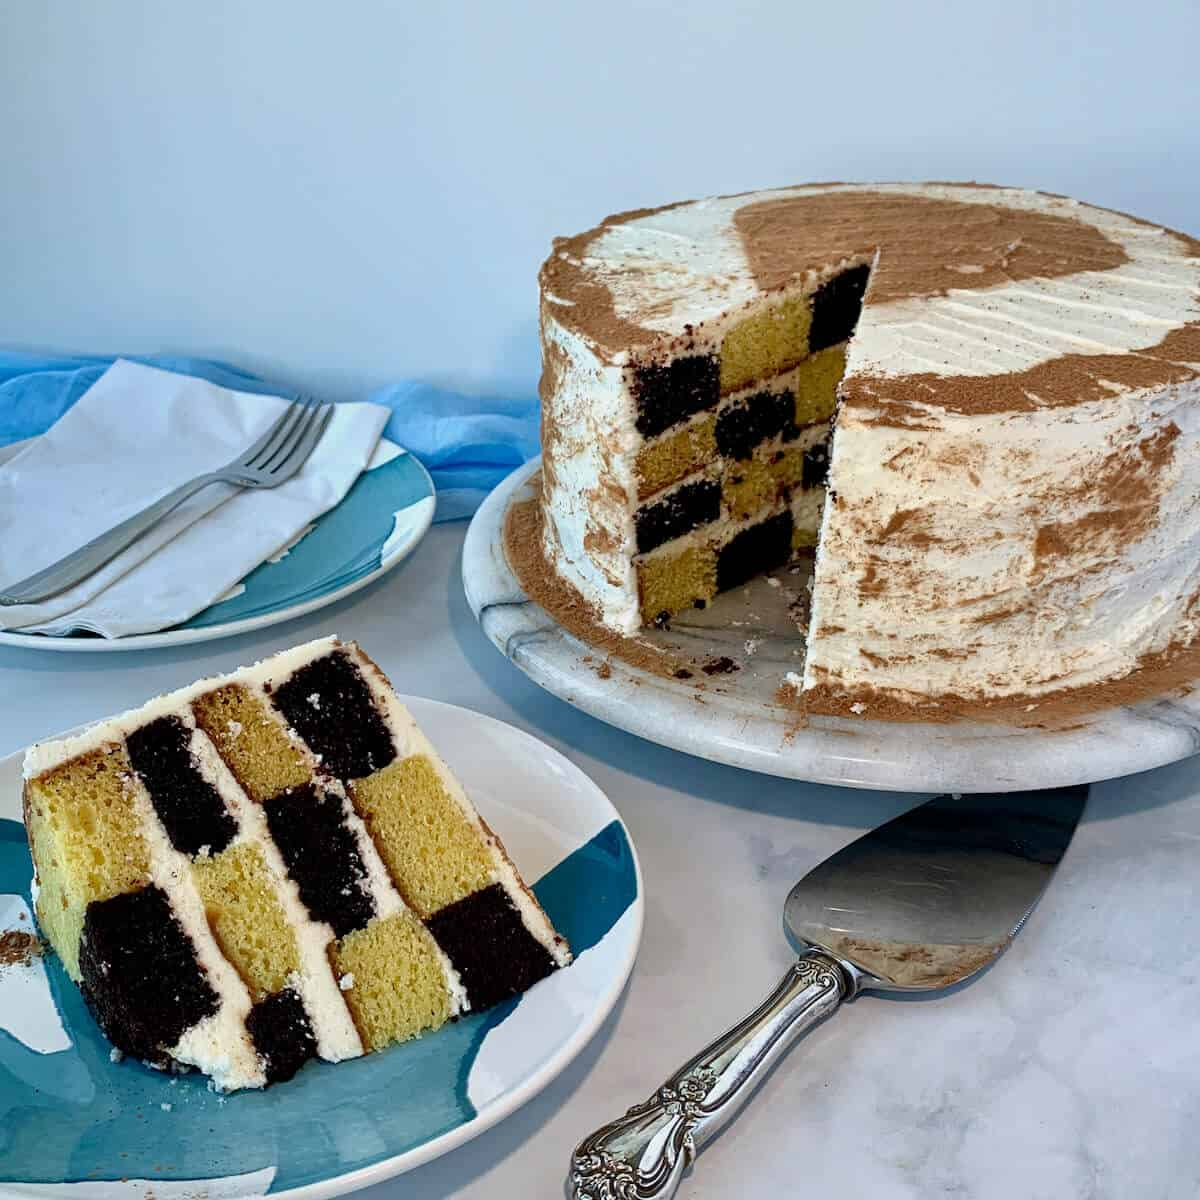 checkerboard cake slice on a blue & white plate next to a cake serve with cake on plate and fork in background